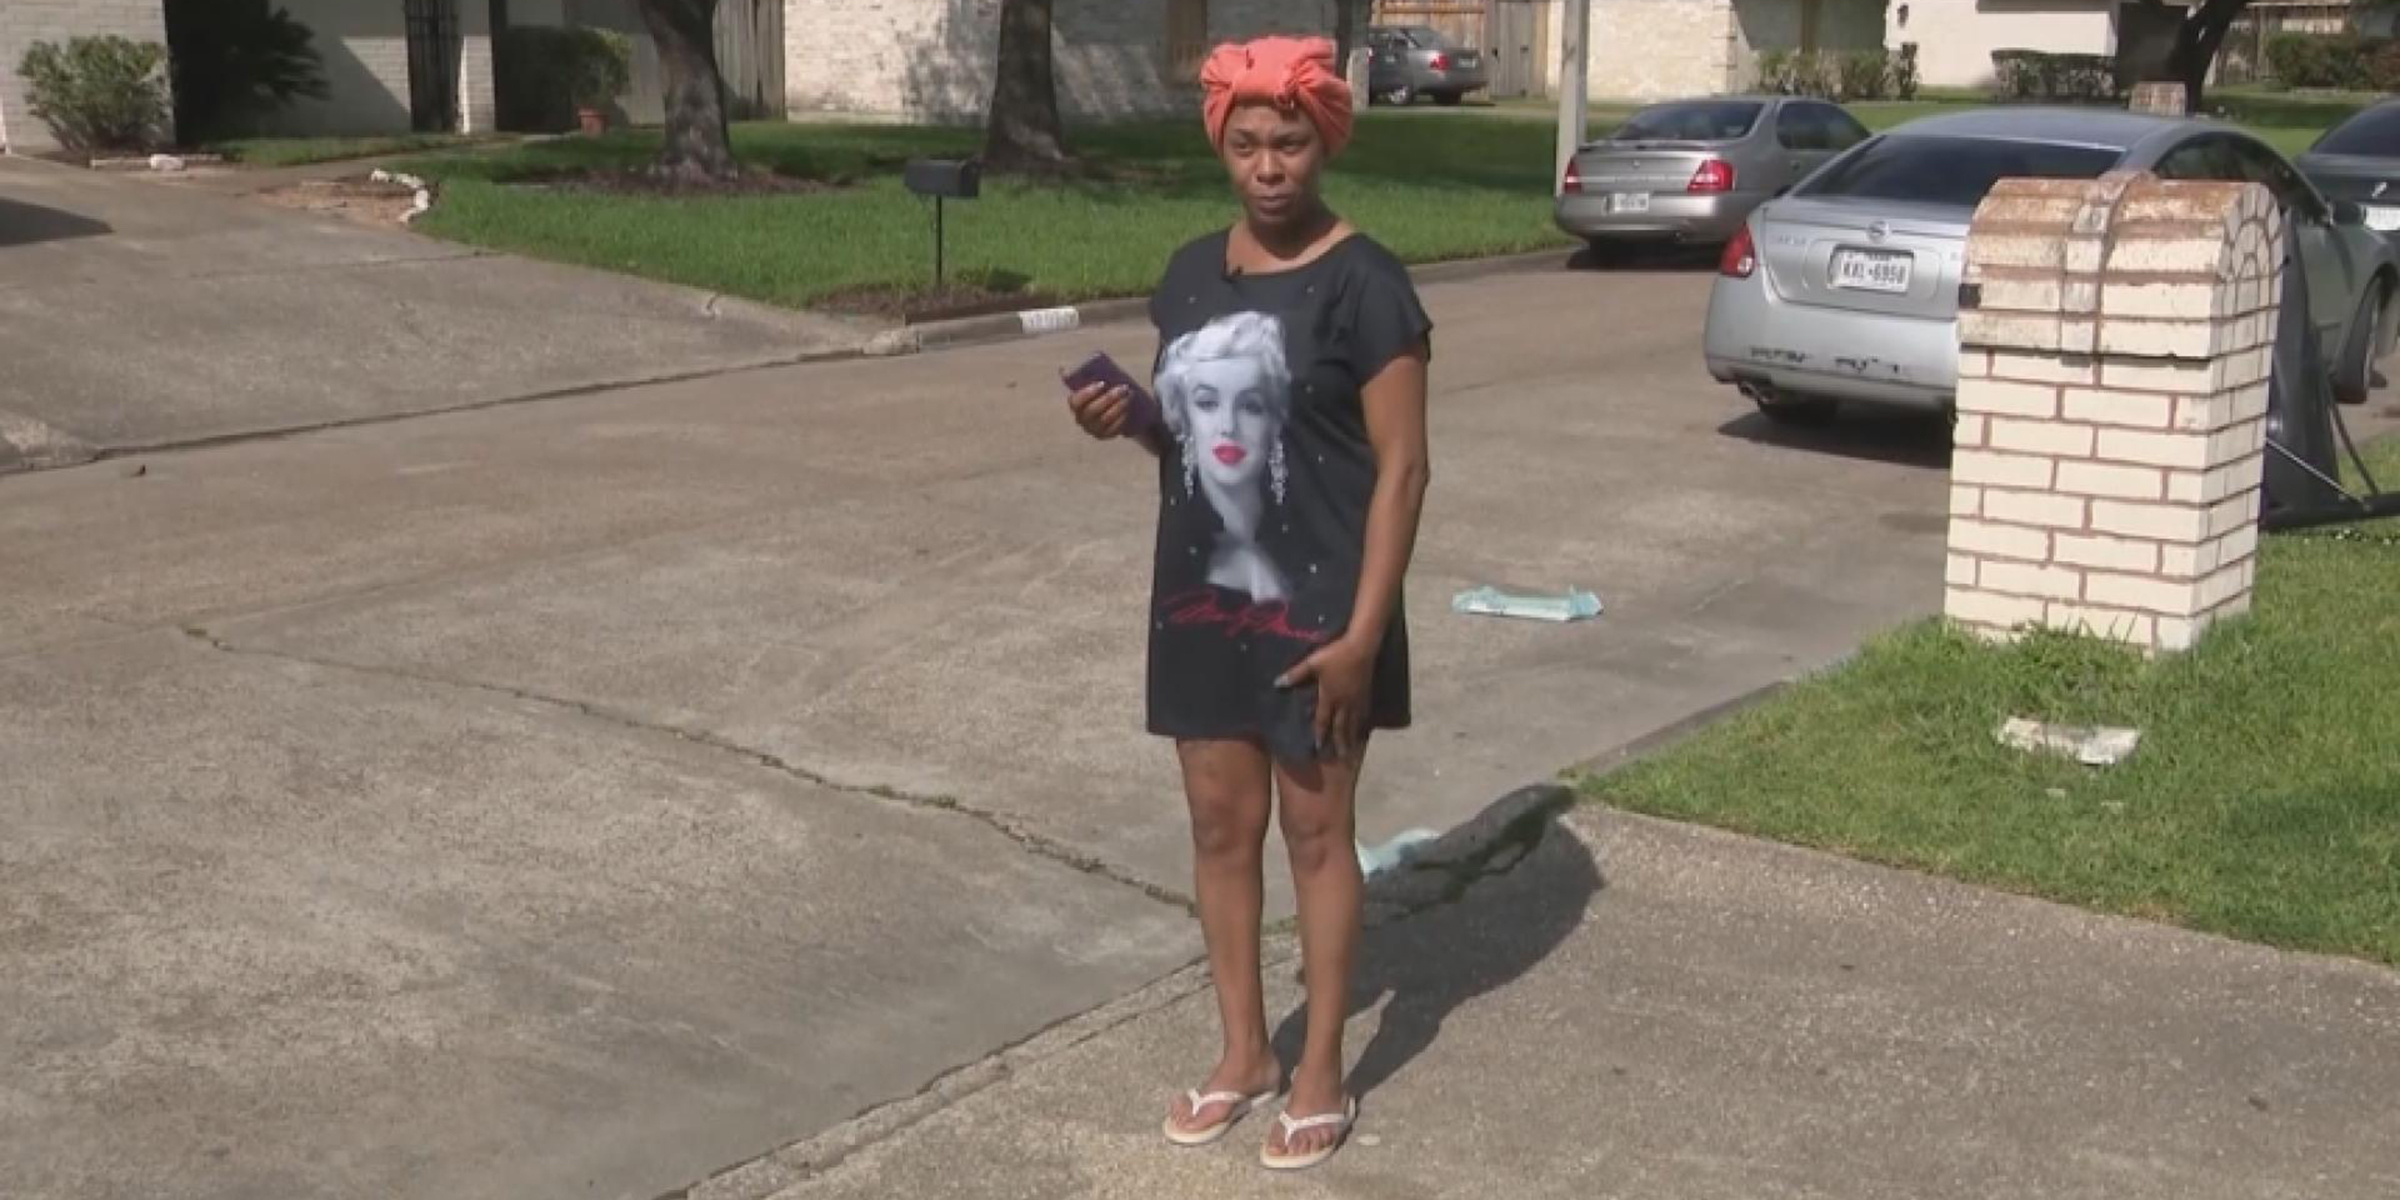 Dress code for parents? Mom says school turned her away because of her outfit